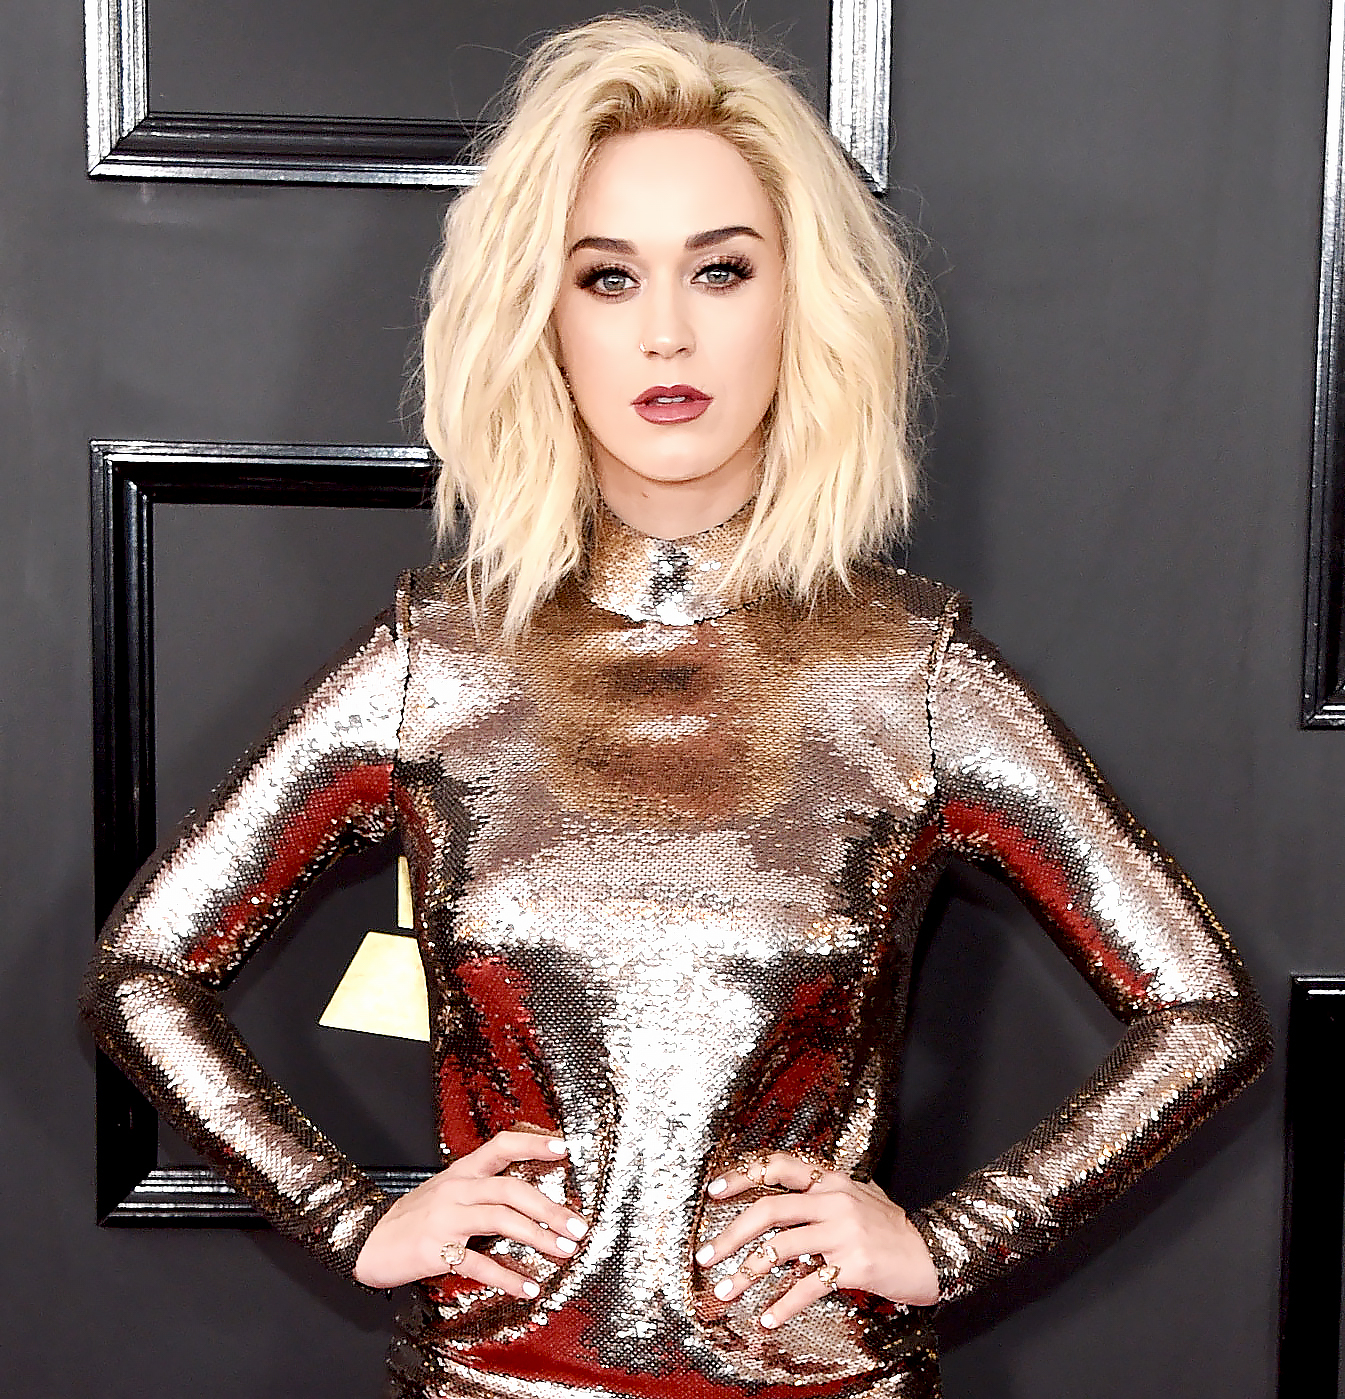 Katy Perry attends the 59th Annual Grammy Awards at Staples Center on Feb, 12, 2017, in Los Angeles.